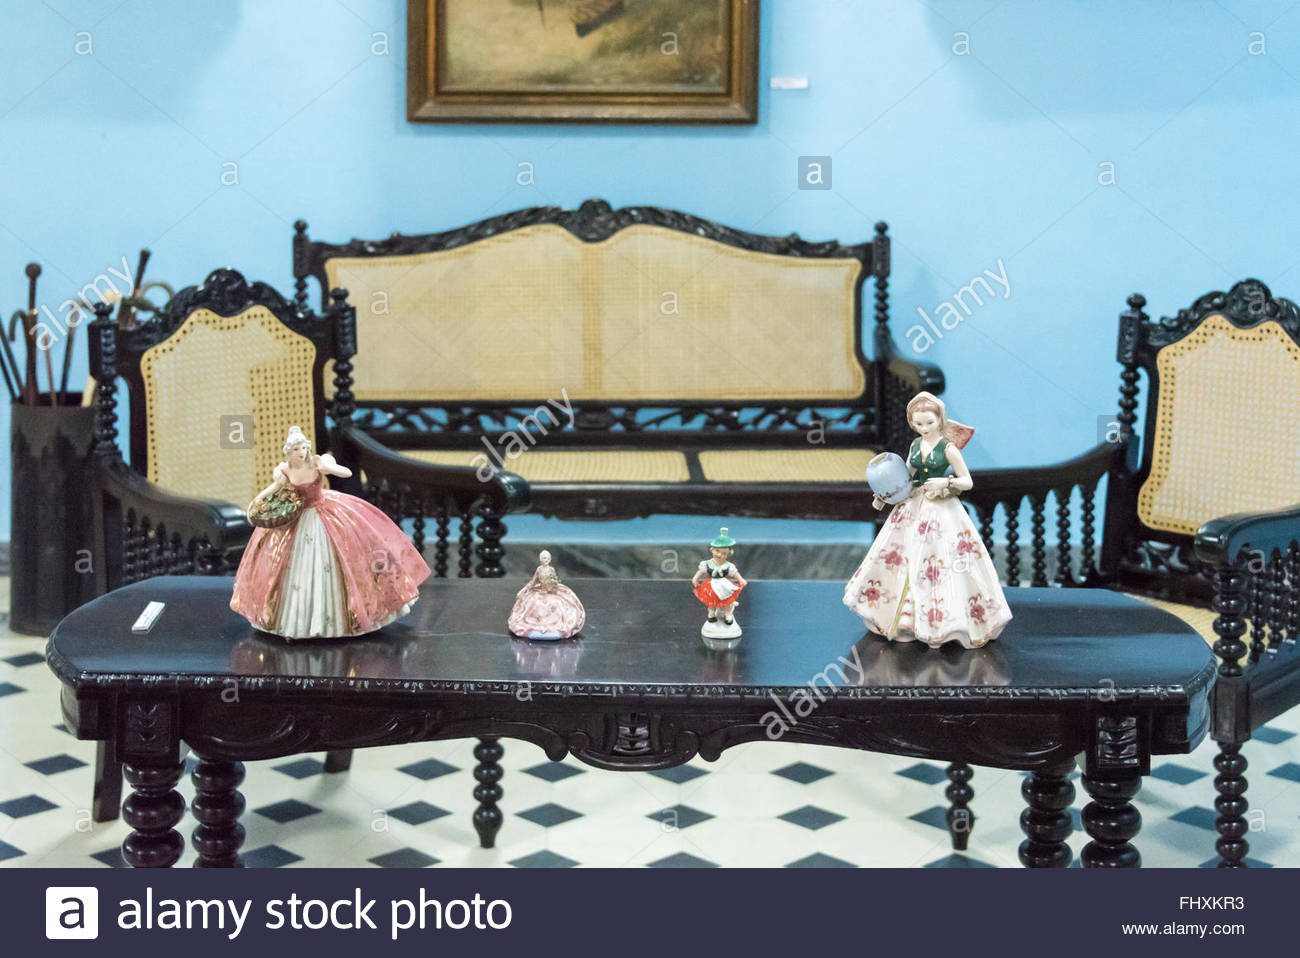 Spanish Wooden Style Furniture In Colonial House. The Luxurious Lifestyle  Of The Spanish Colonial Times In Cuba Are A Major Tourist Attraction